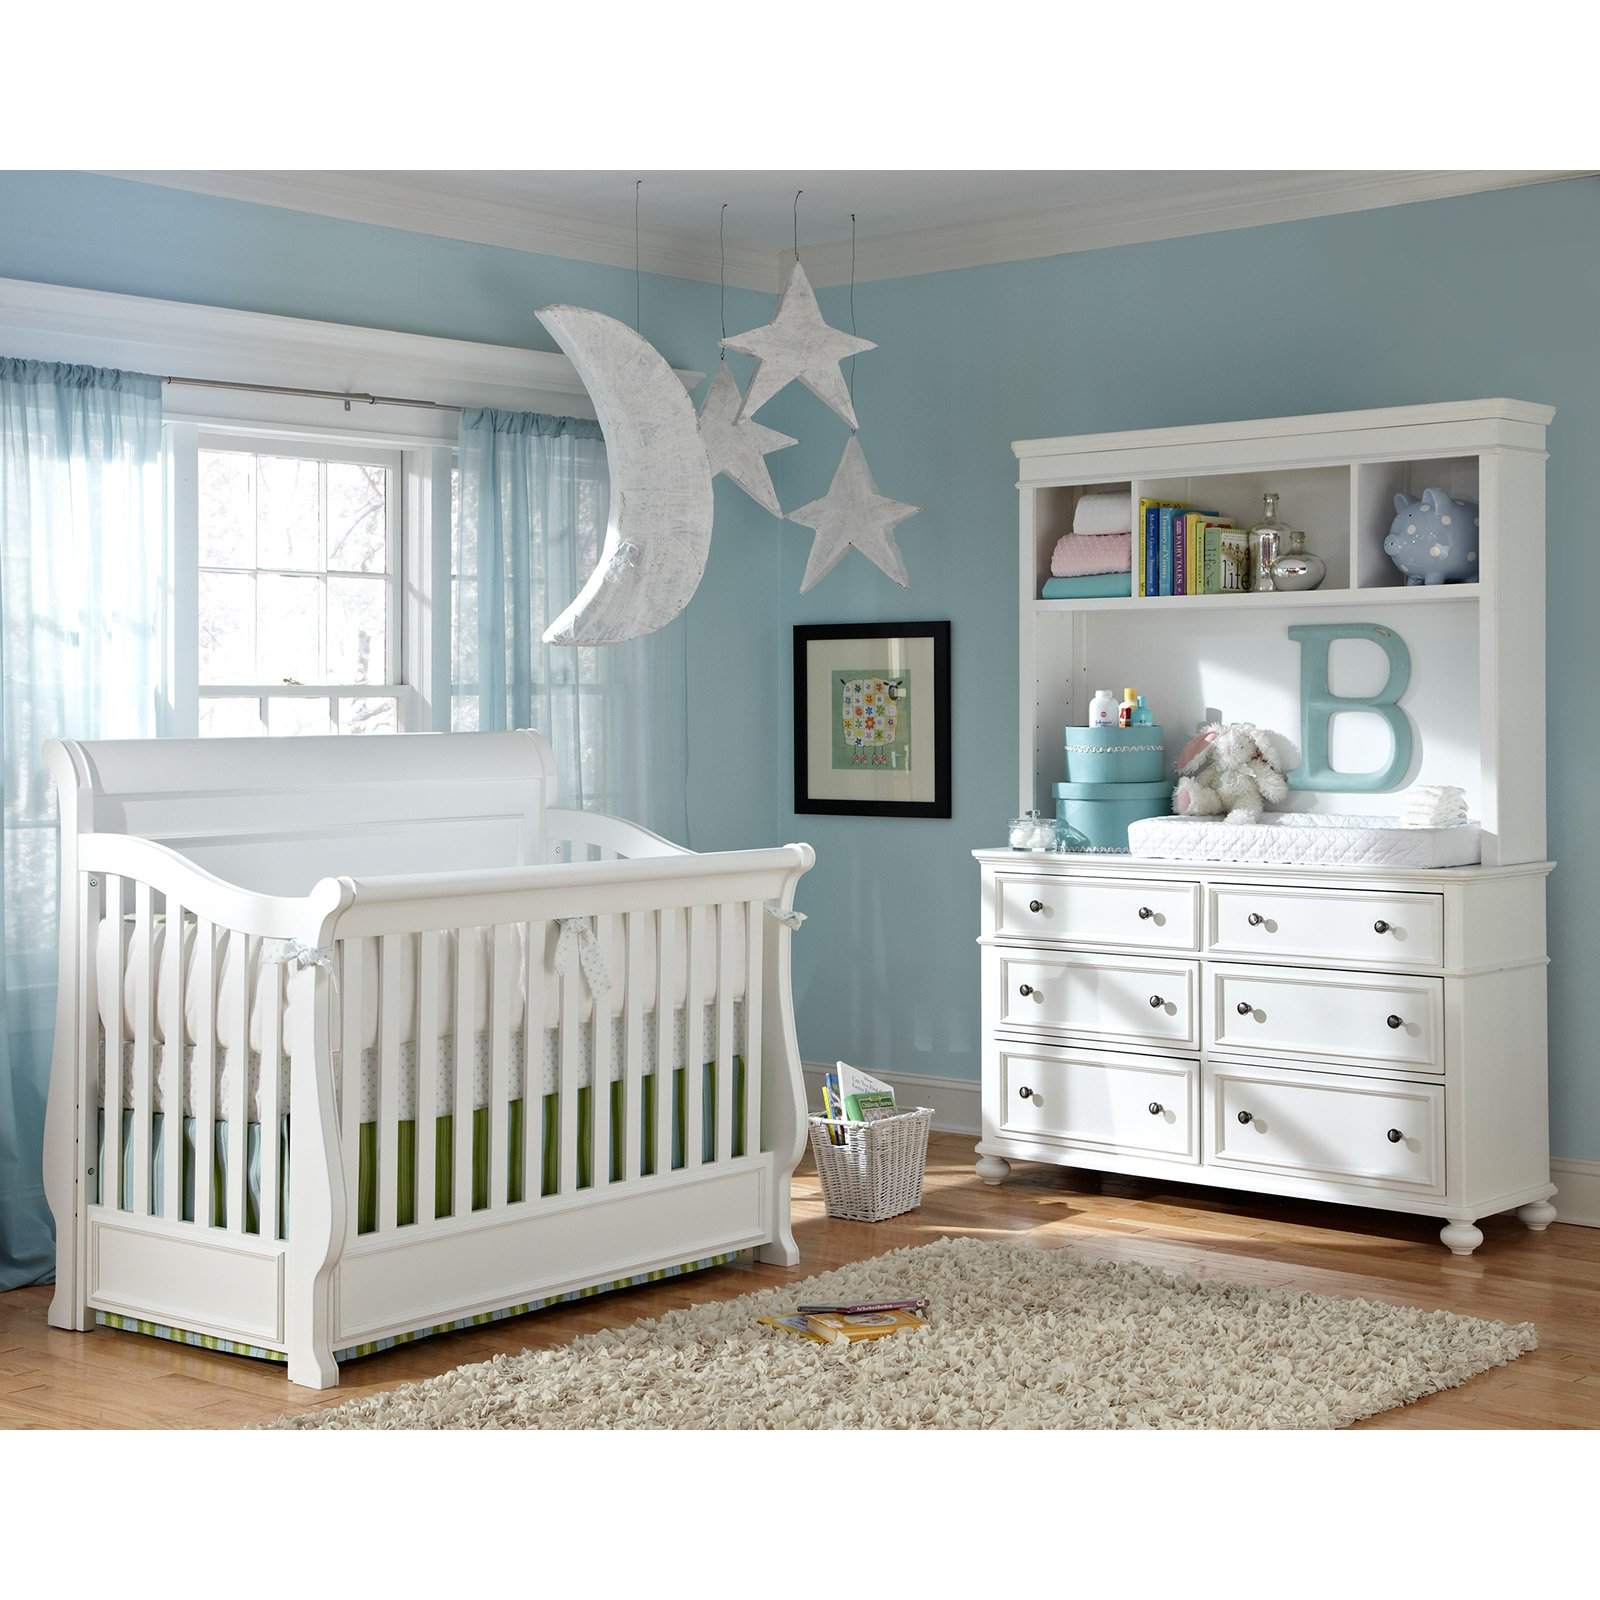 munire crib in white plus white armoire on wooden floor with wheat carpet matched with blue wall with white window plus curtain and hanging star and moon ornament for nursery decor ideas